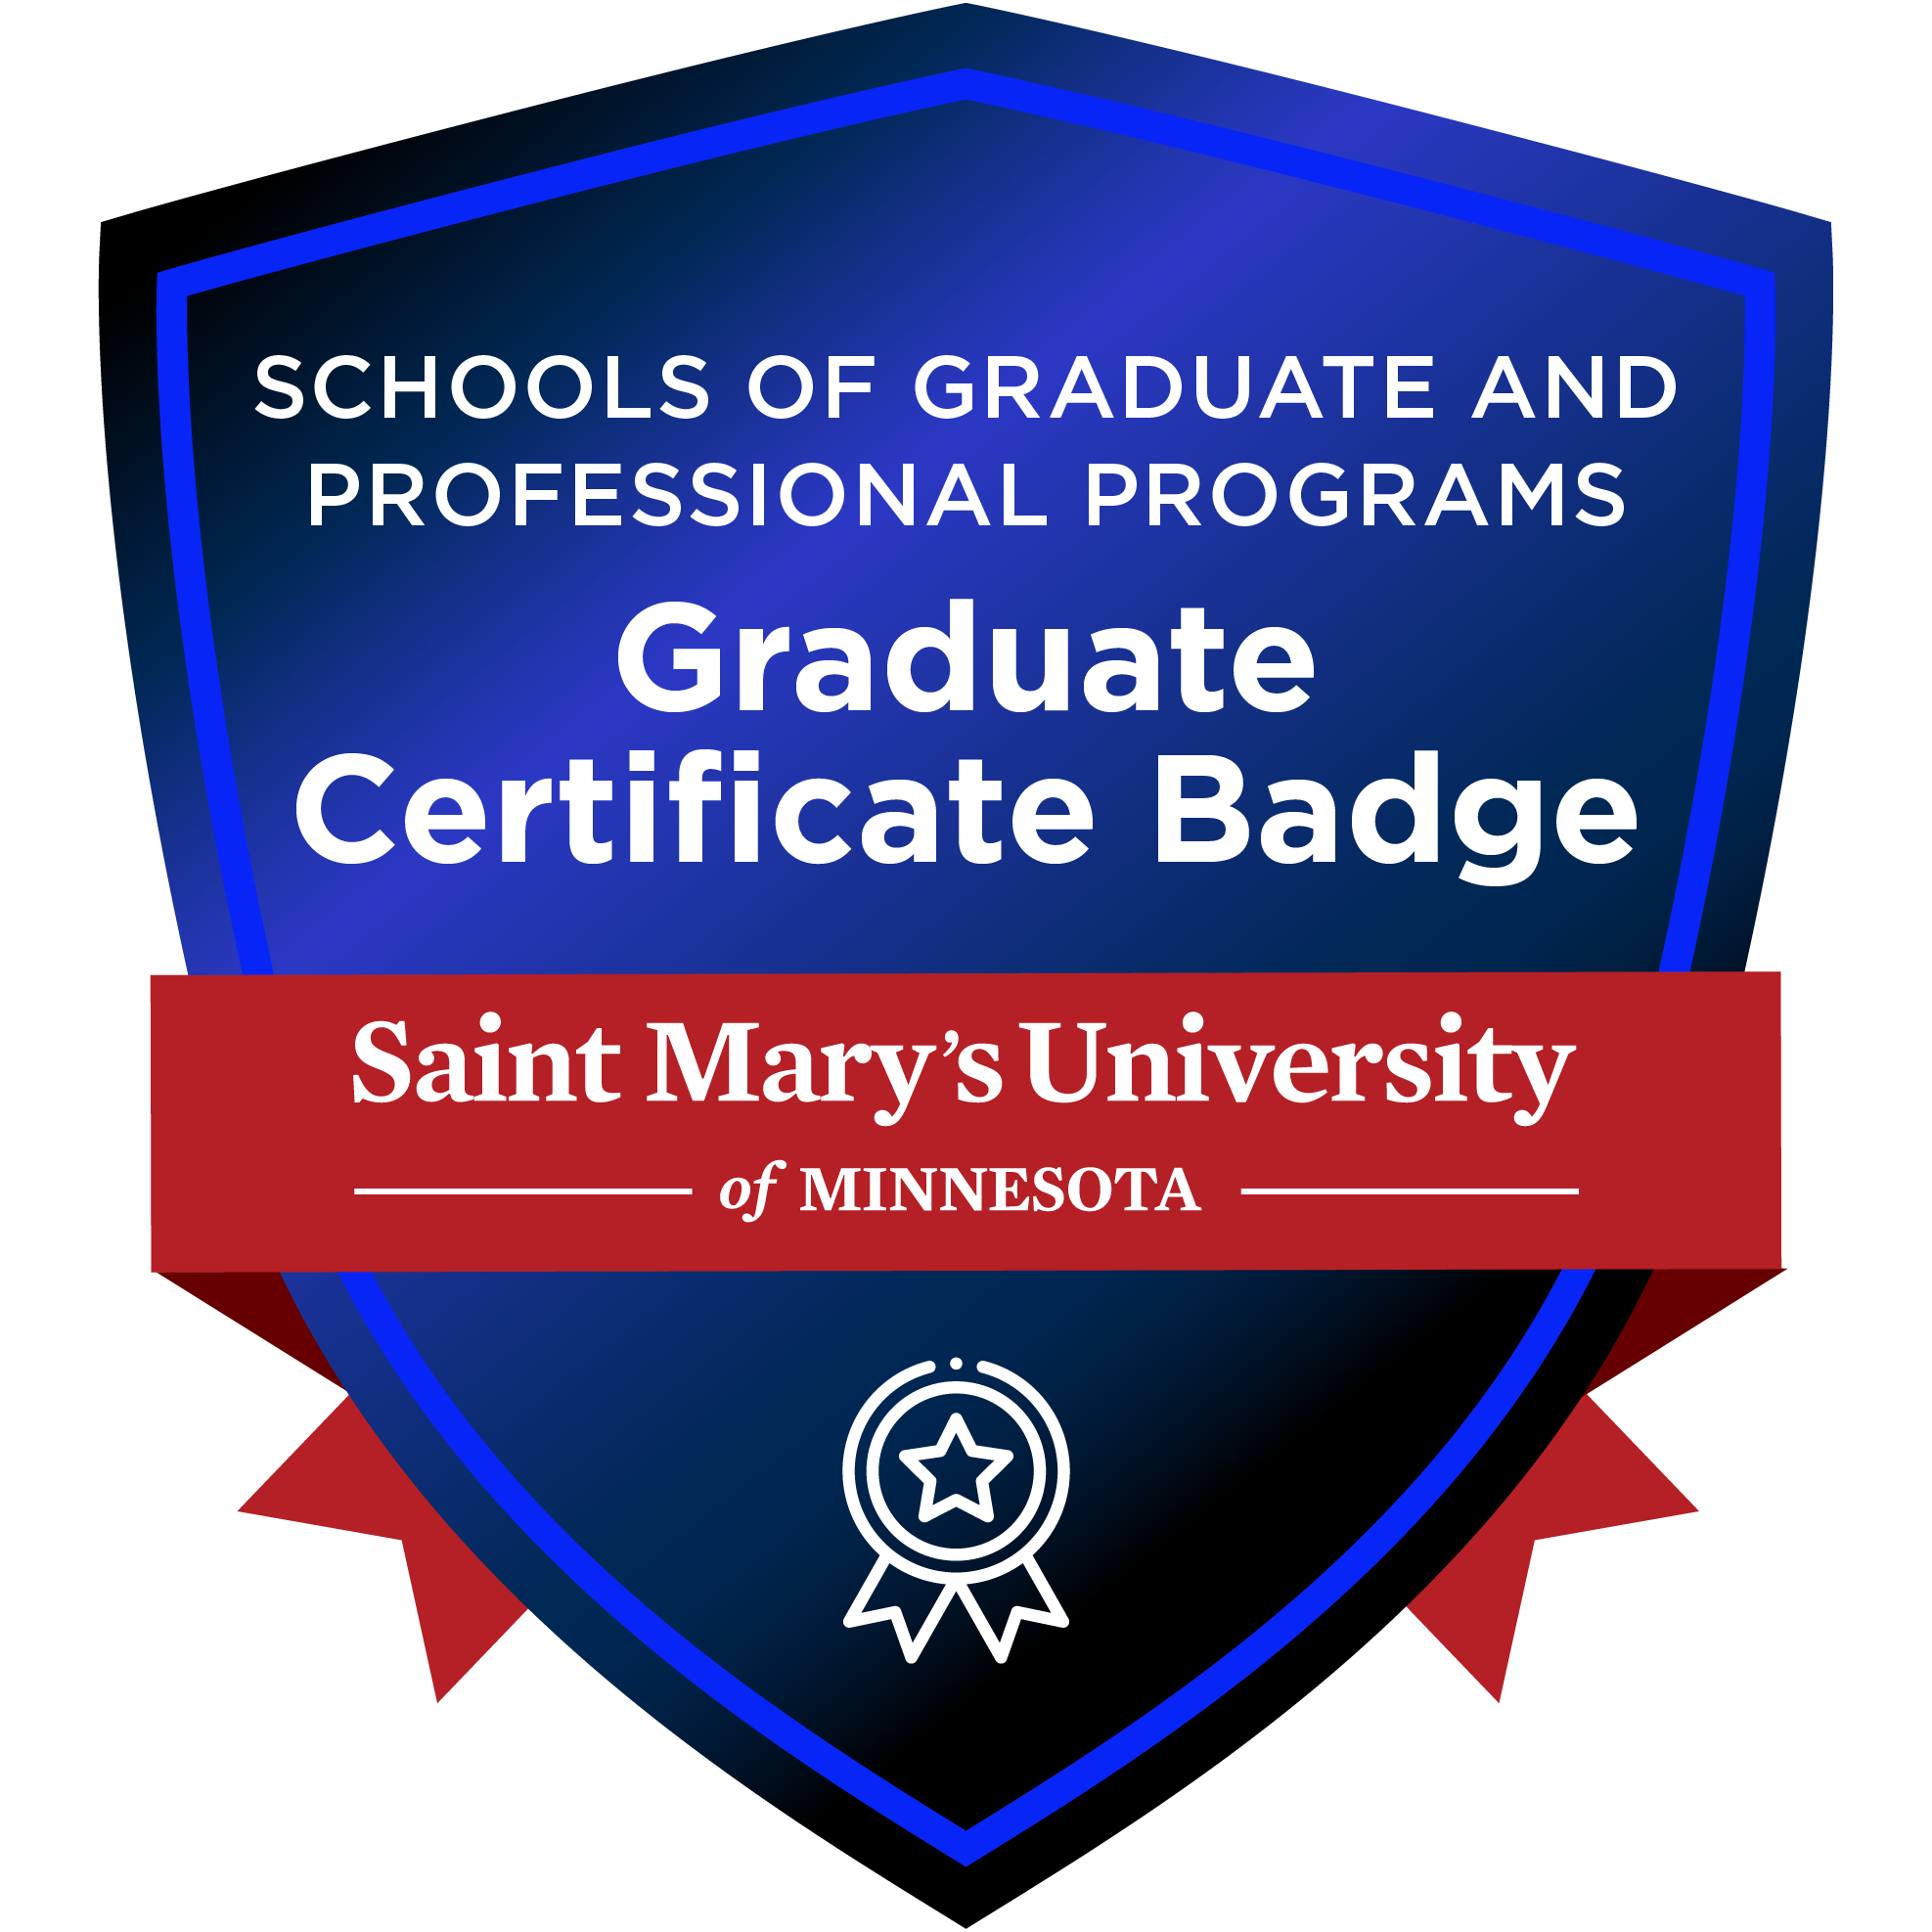 Schools of Graduate and Professional Programs Graduate Certificate Badge, Saint Mary's University of Minnesota